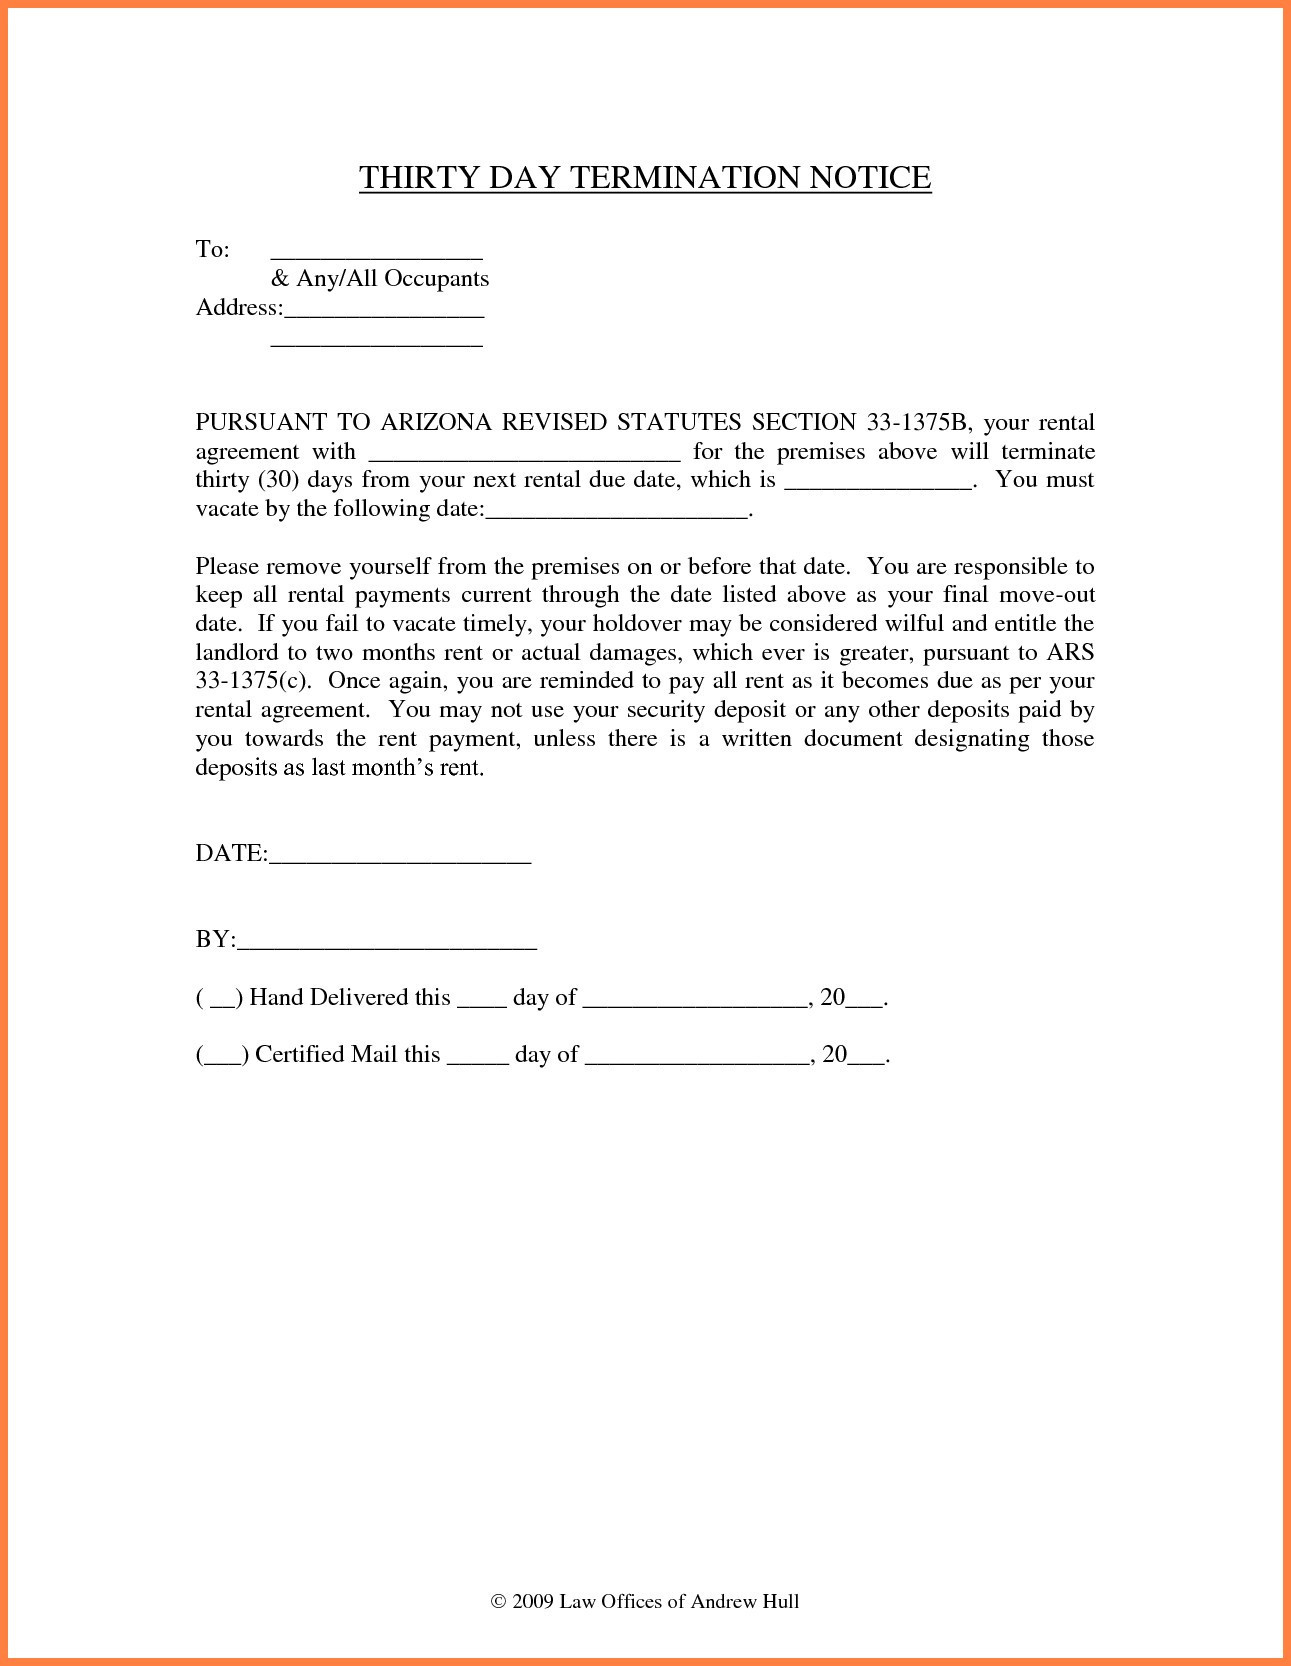 30 Day Notice to Vacate Letter to Tenant Template - Notice to Vacate Letter to Tenant Template Best Termination